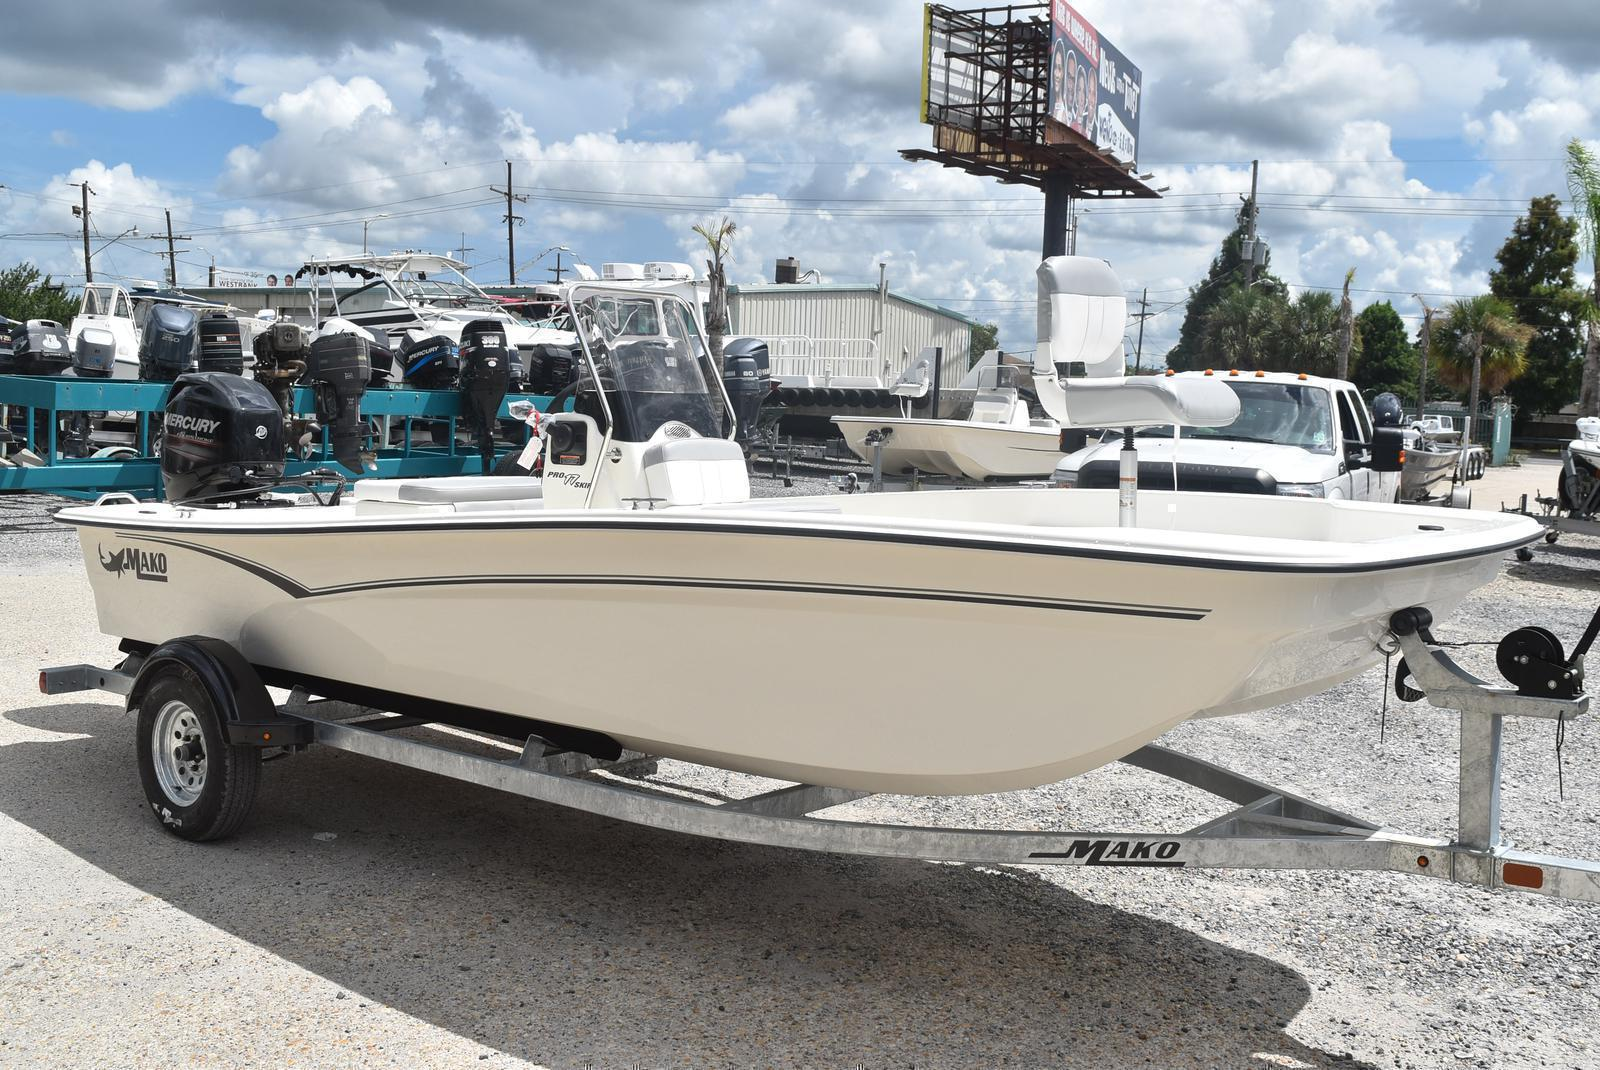 2020 Mako boat for sale, model of the boat is Pro Skiff 17, 75 ELPT & Image # 652 of 702